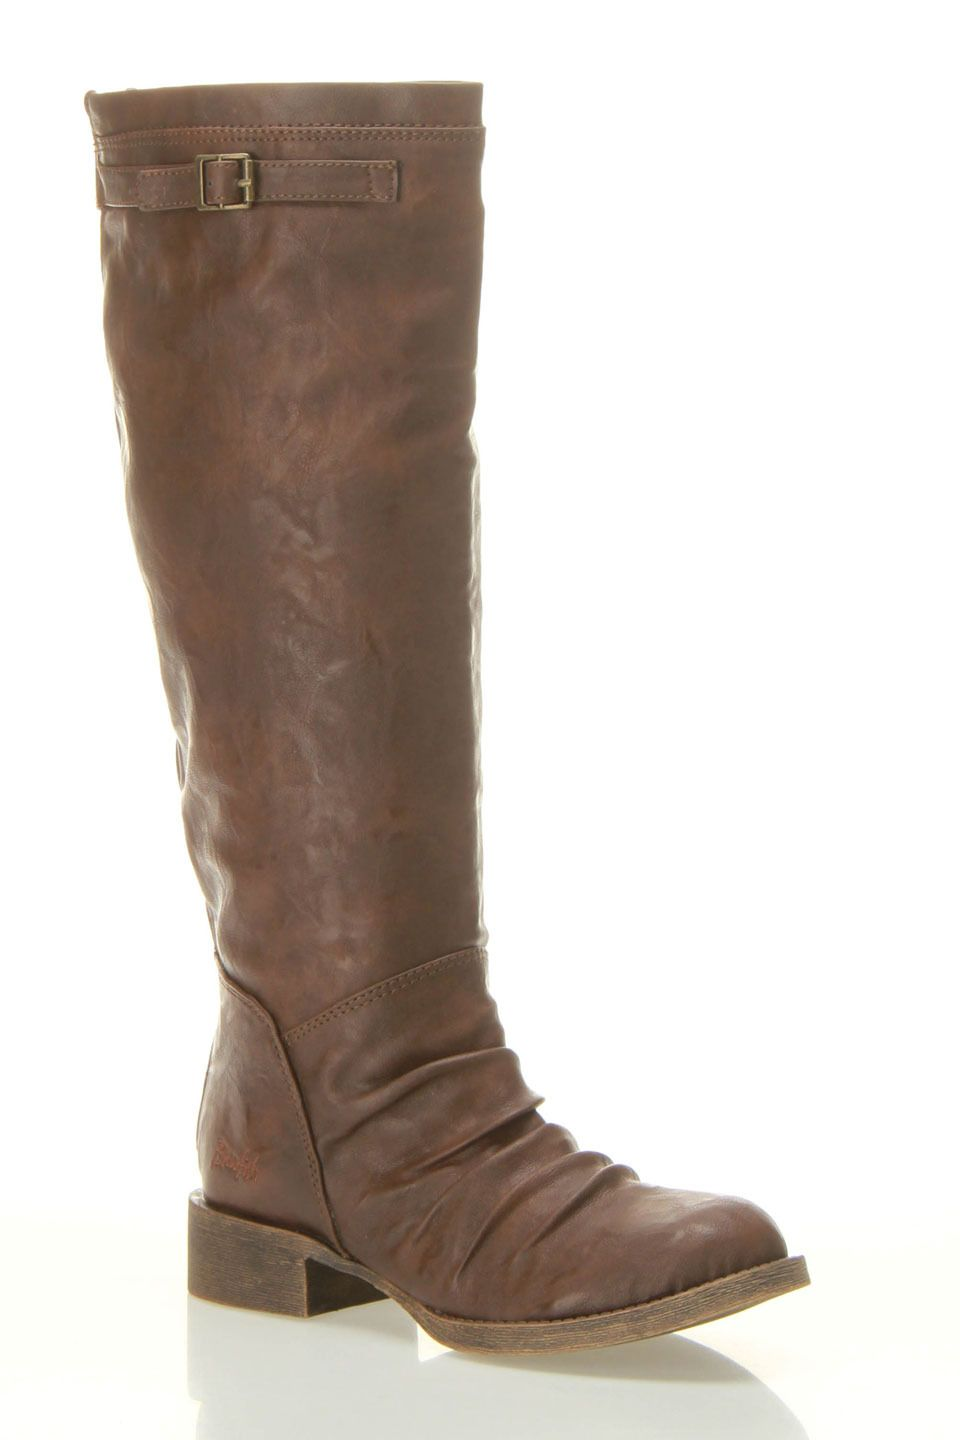 99 Riding Heel 59 Kanne Boot In Whiskey Shoes Stacked E4fxwqAw0